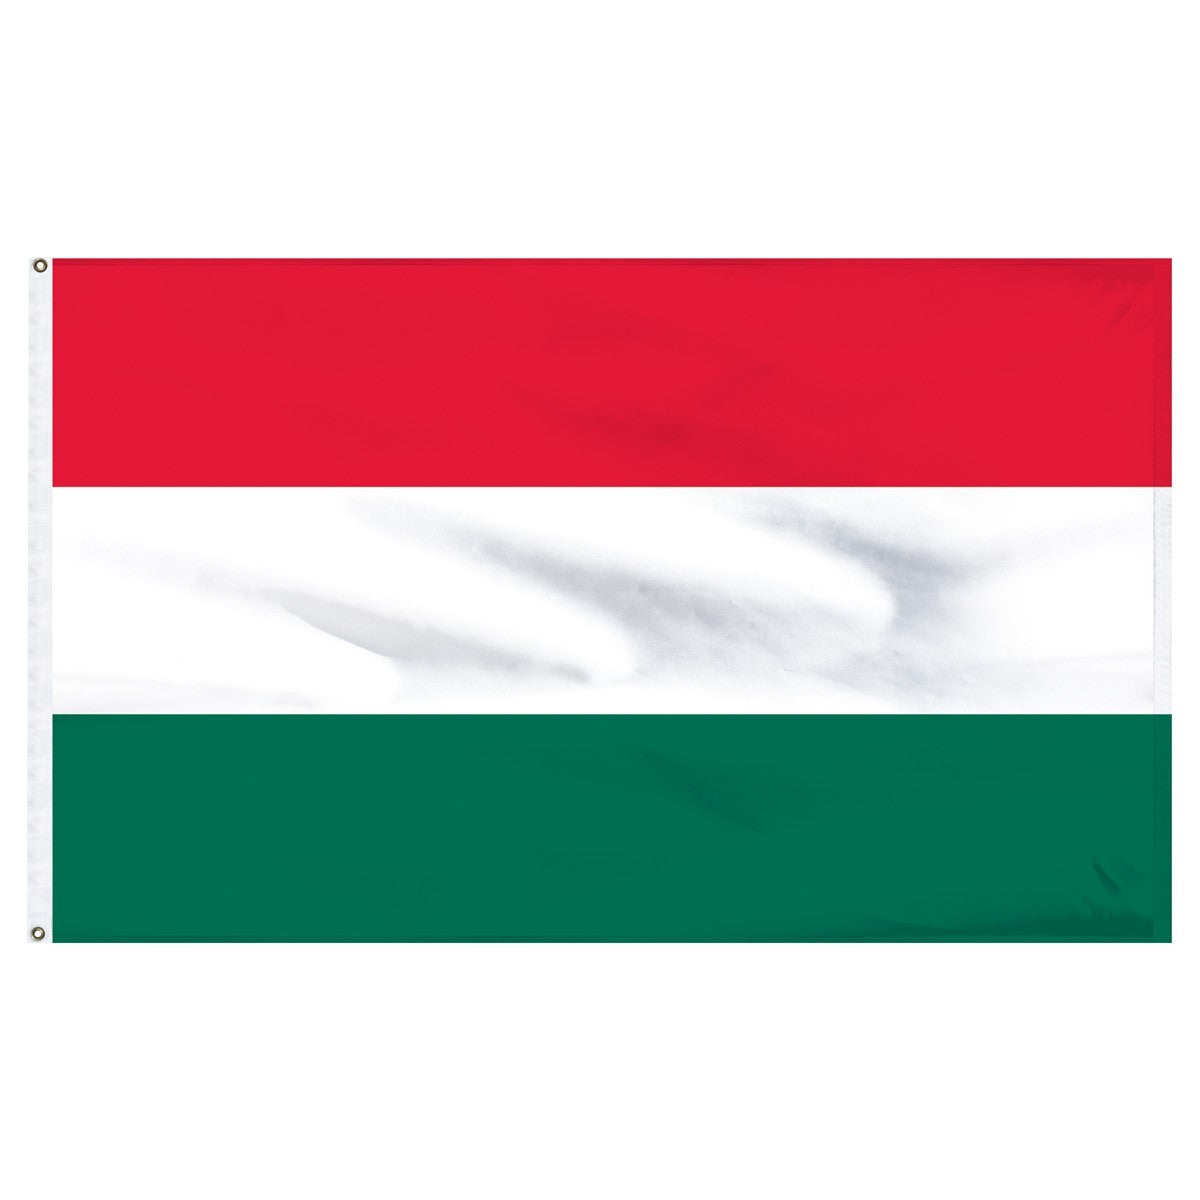 Hungary Stick Flags For Sale by 1-800 Flags